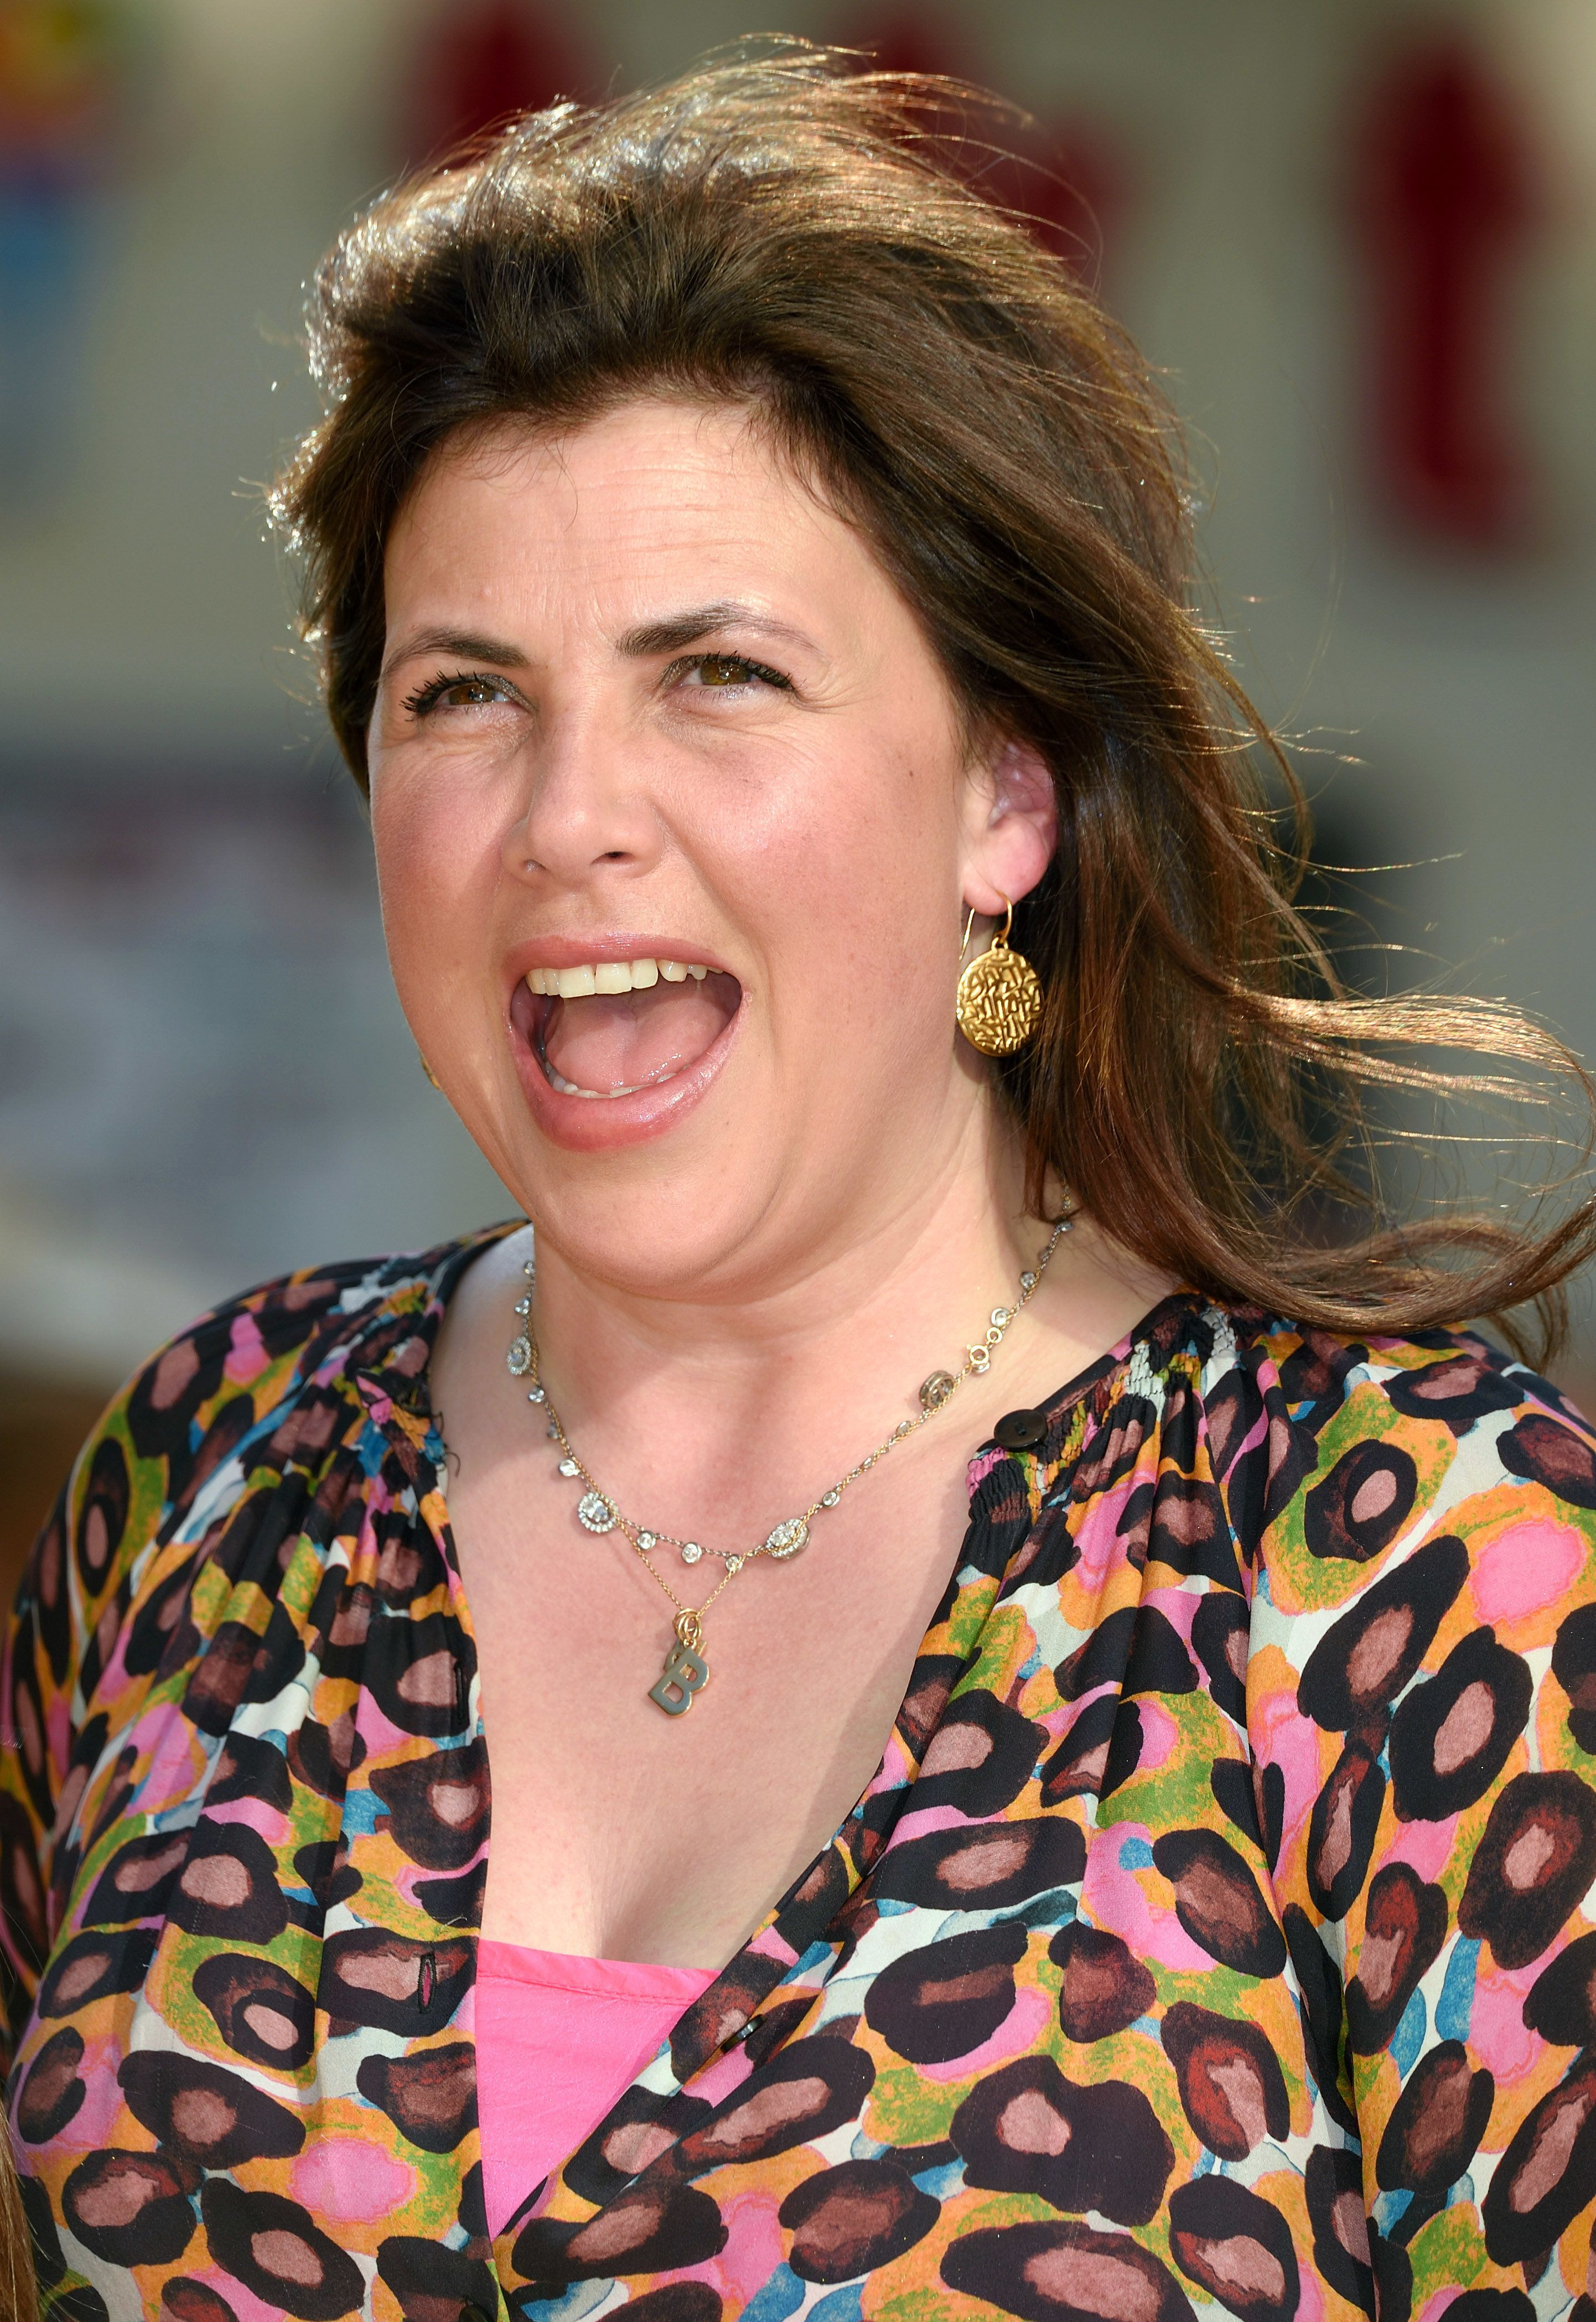 Kirstie Allsopp Blames 'Brexiting Brits' As She Quits Twitter Over Recent